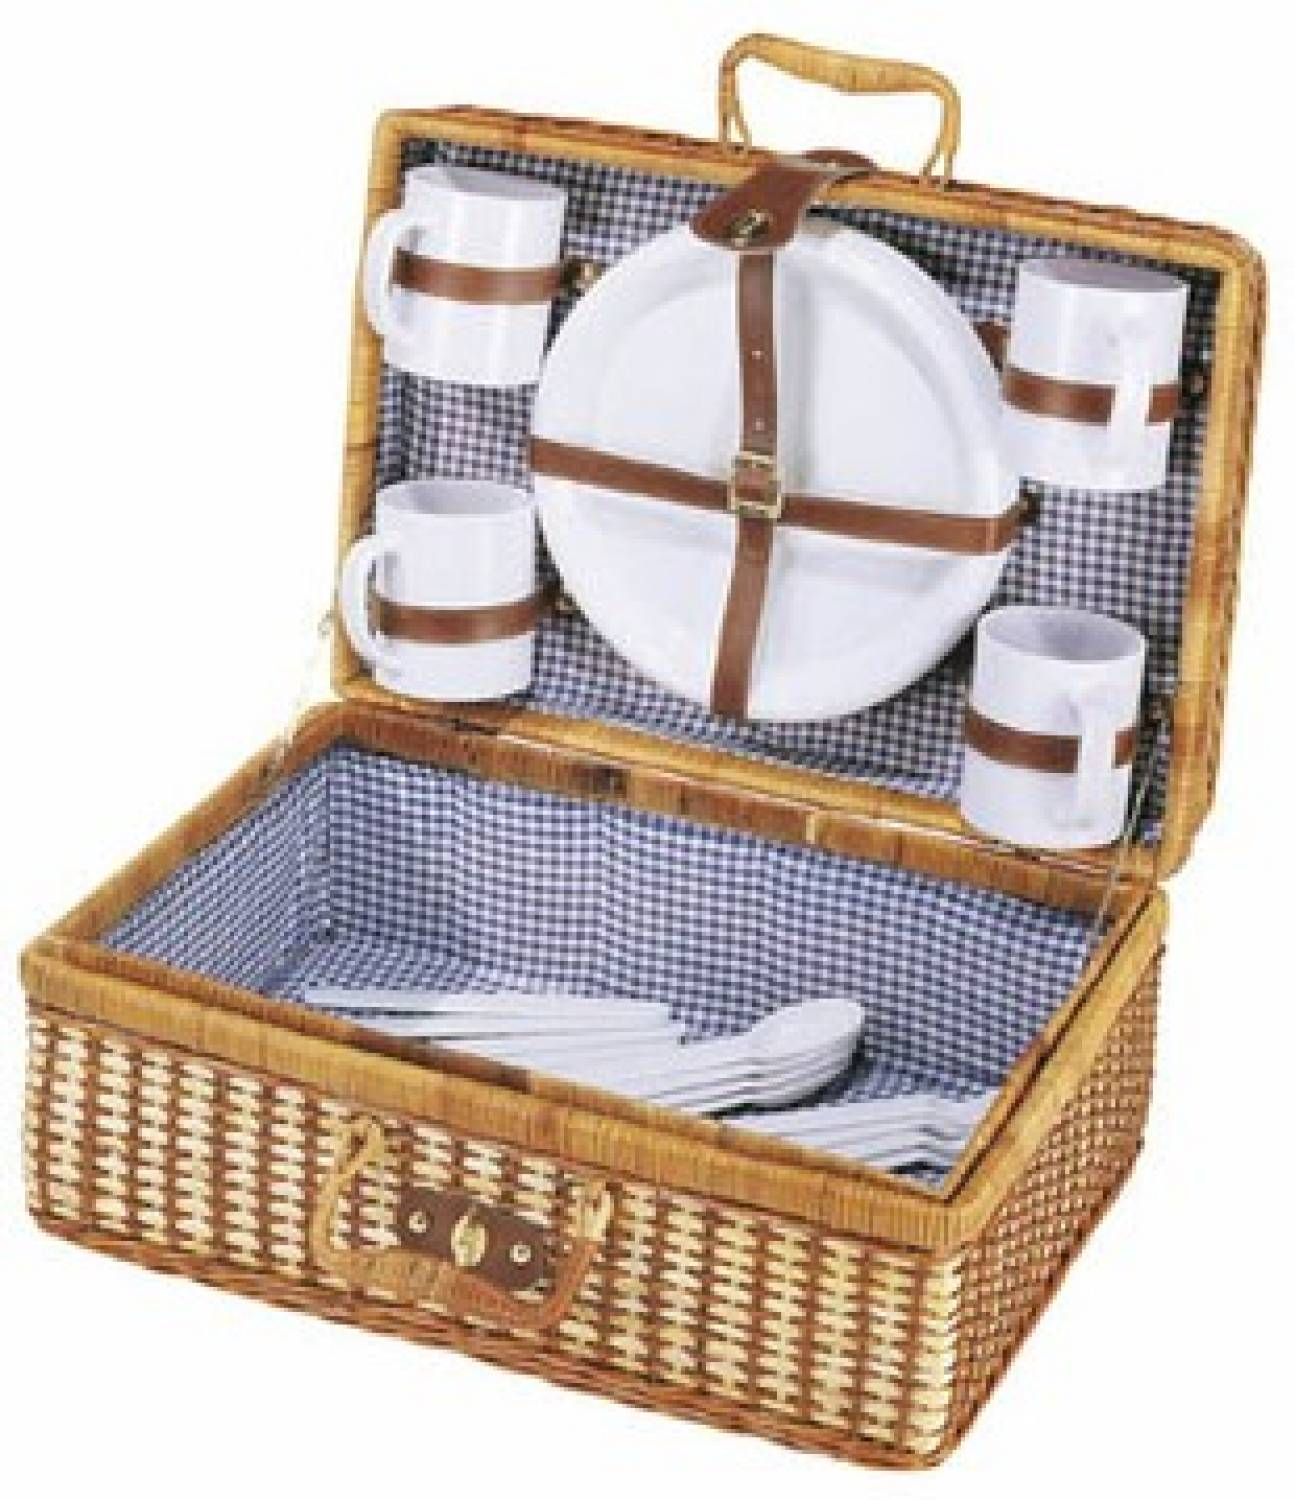 Cheap Picnic Basket For 4 : With us you can cheap picnic baskets quot bamboo buy goods